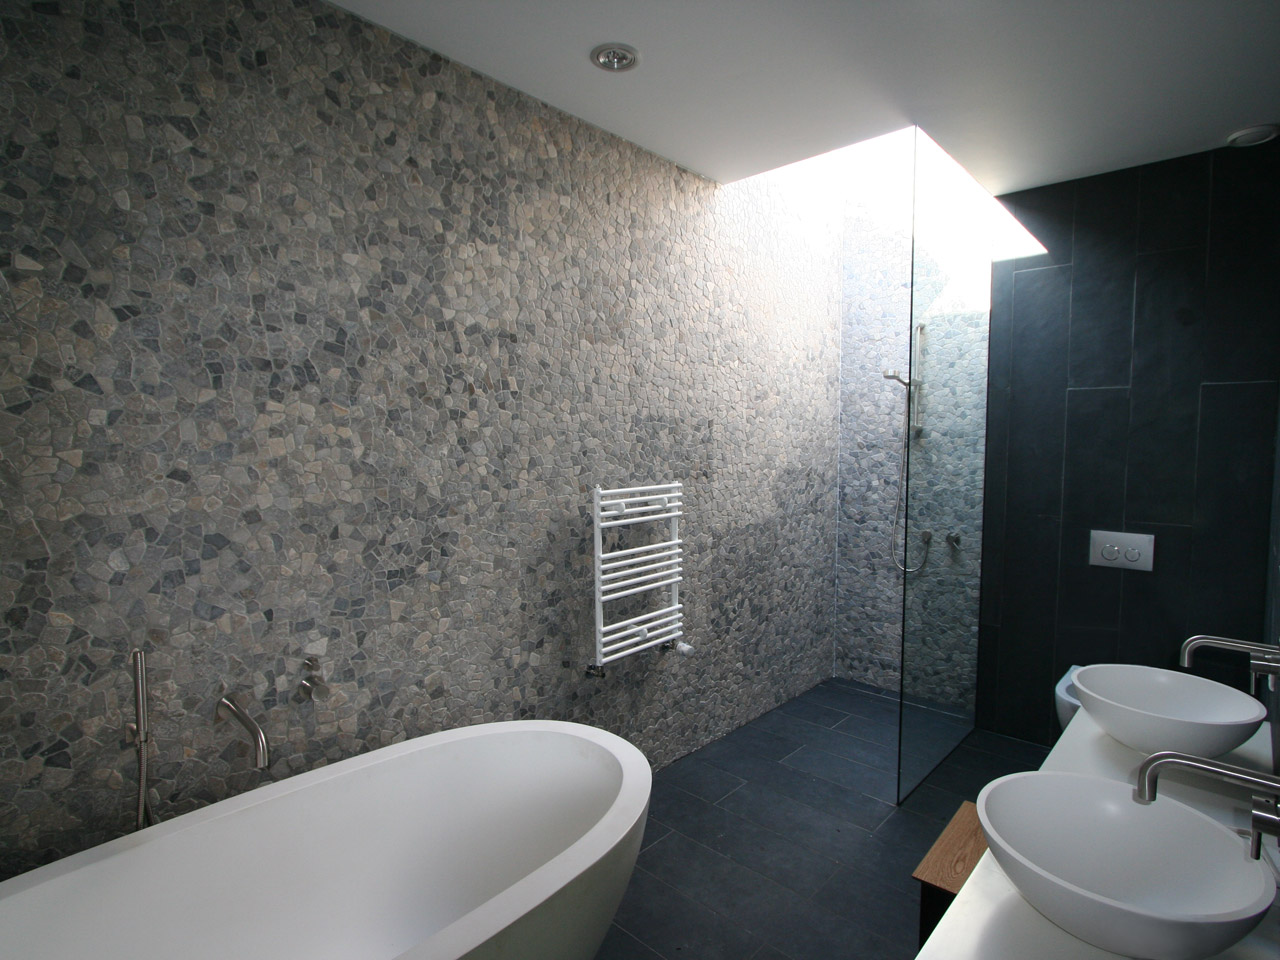 Bathroom with a natural ambience and sky light